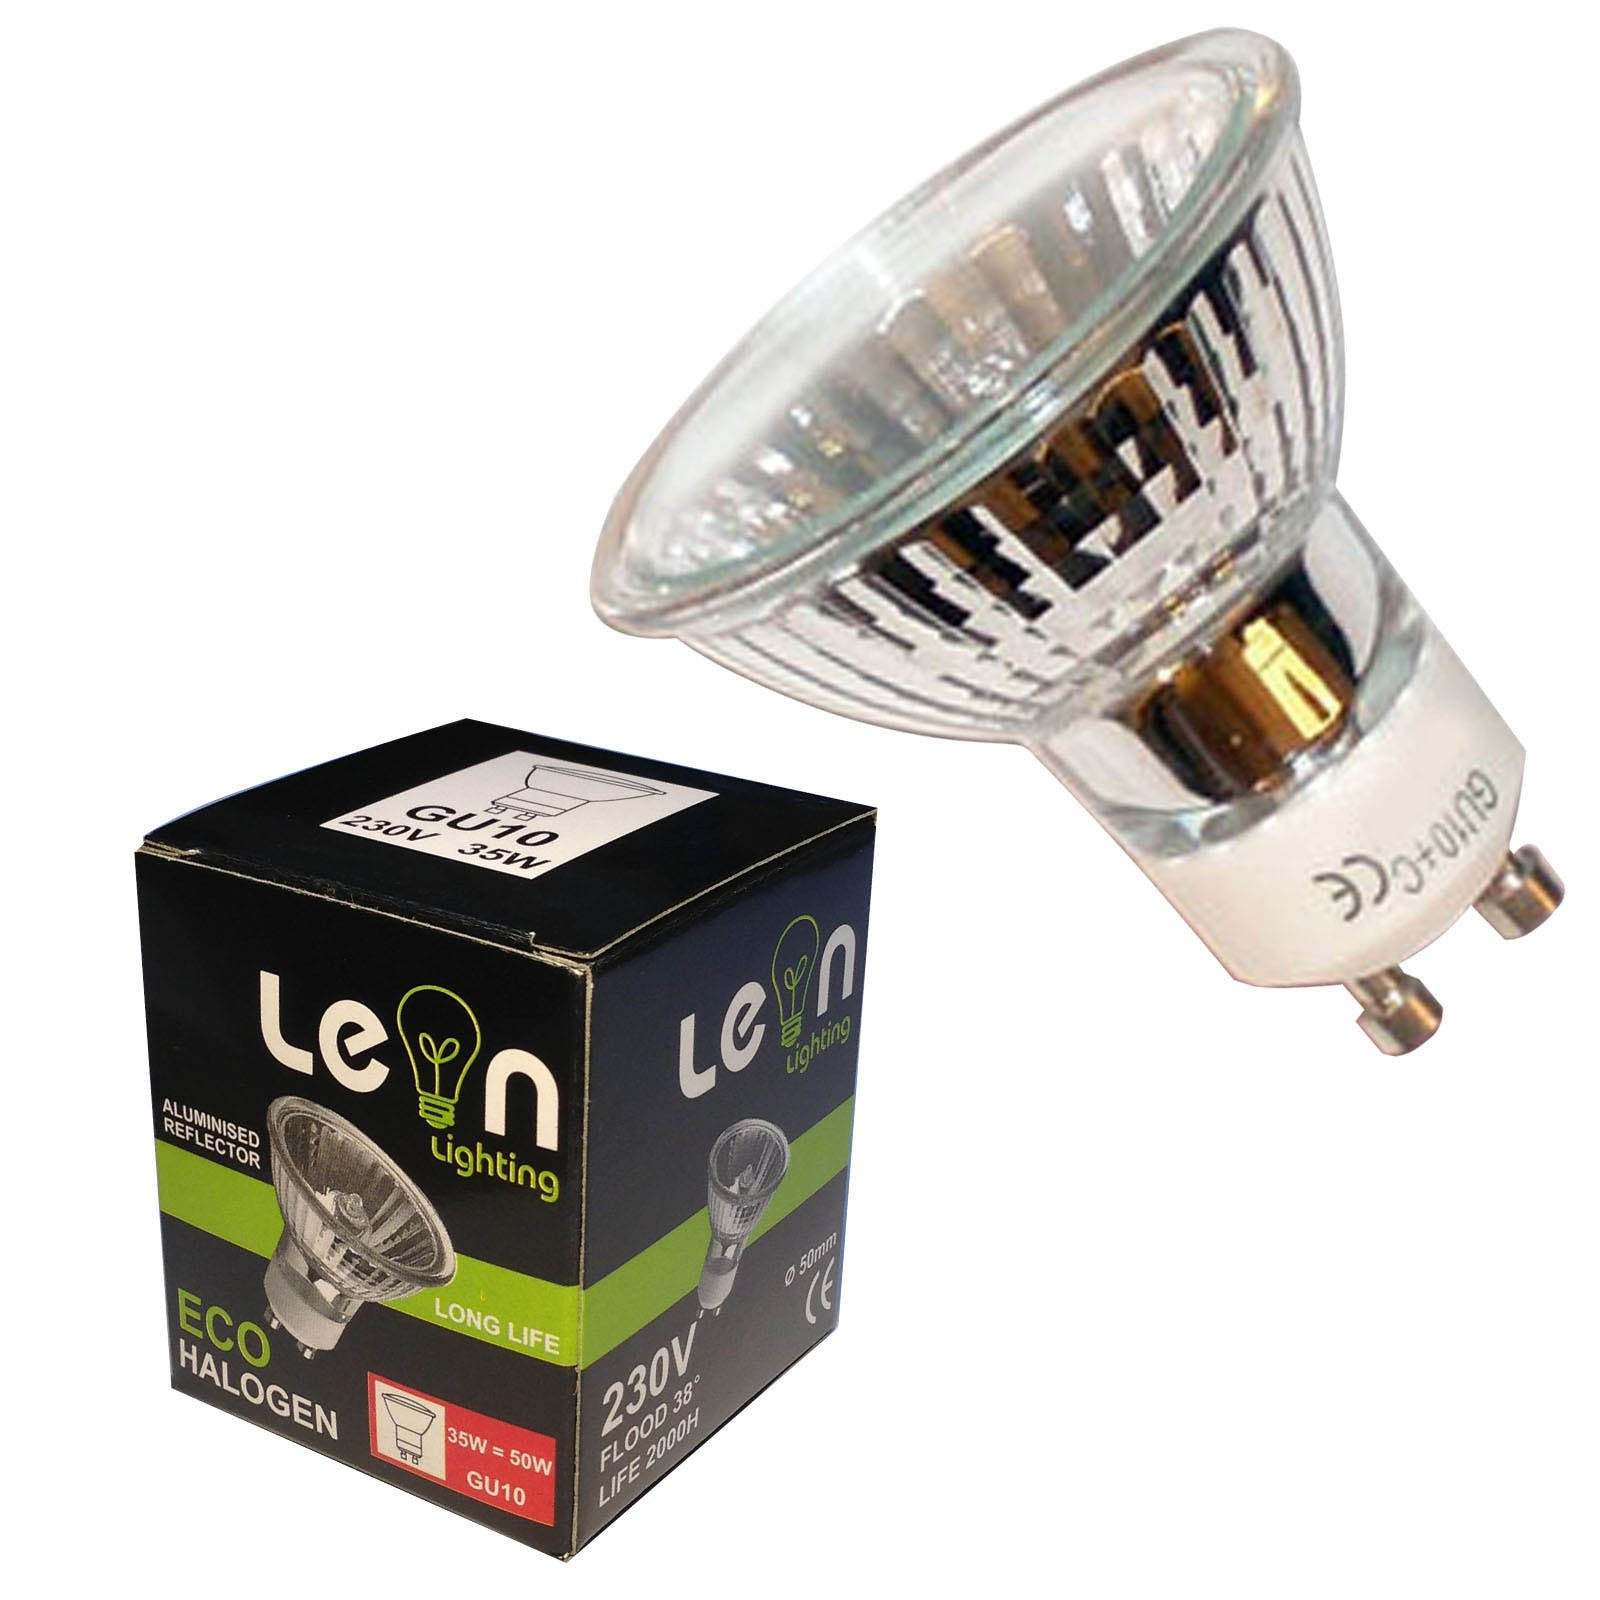 Leonlighting Halogen Lamps